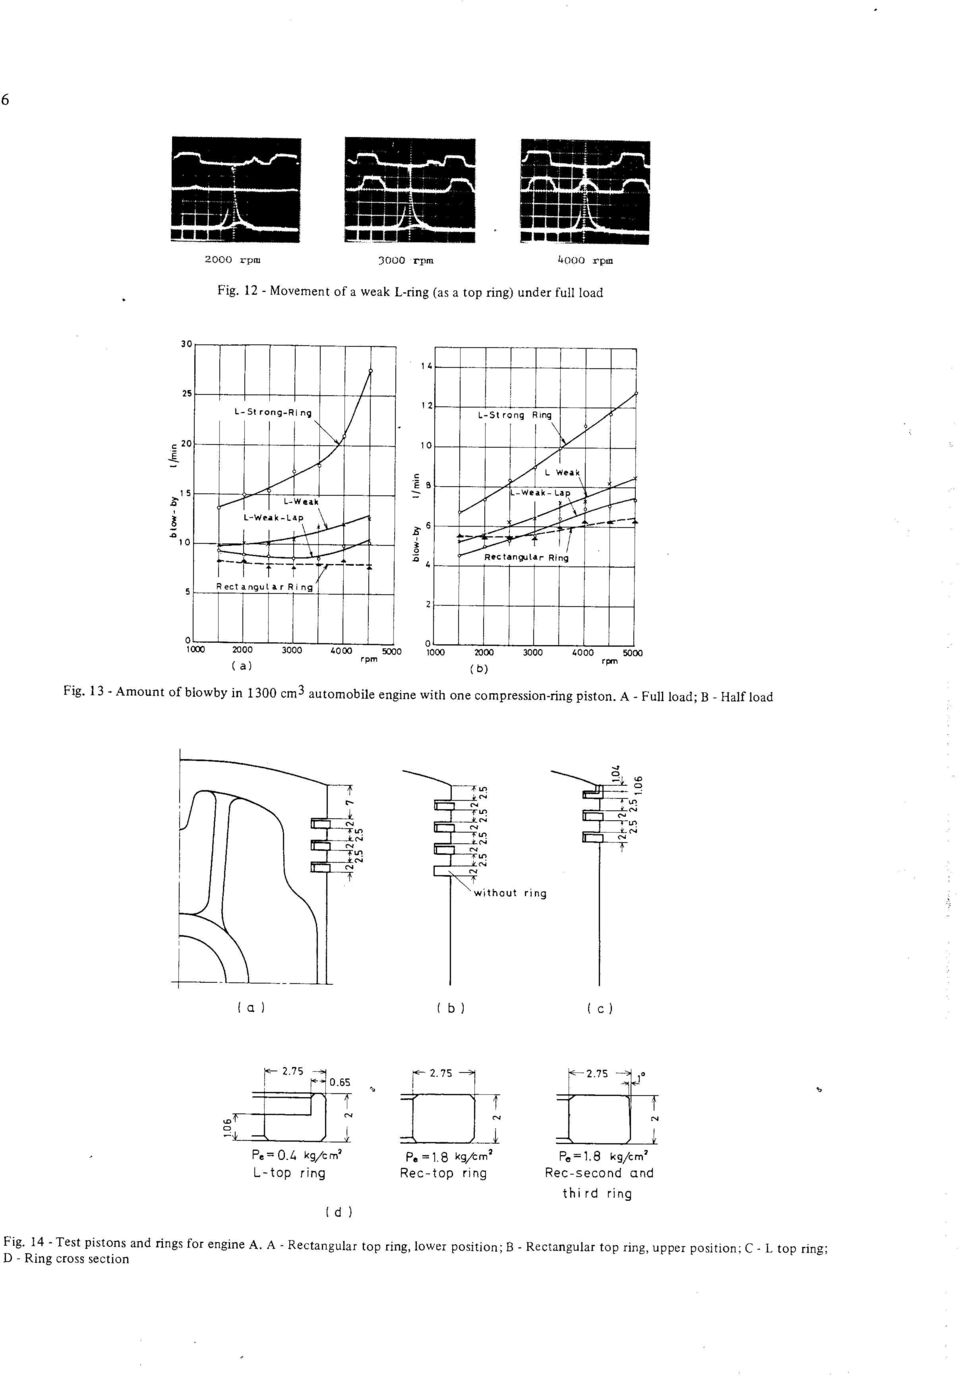 Two Stroke Gasoline Engines Pdf Compression Test Engine Diagram A Full Load B Half C Ei Without Rlng L Top